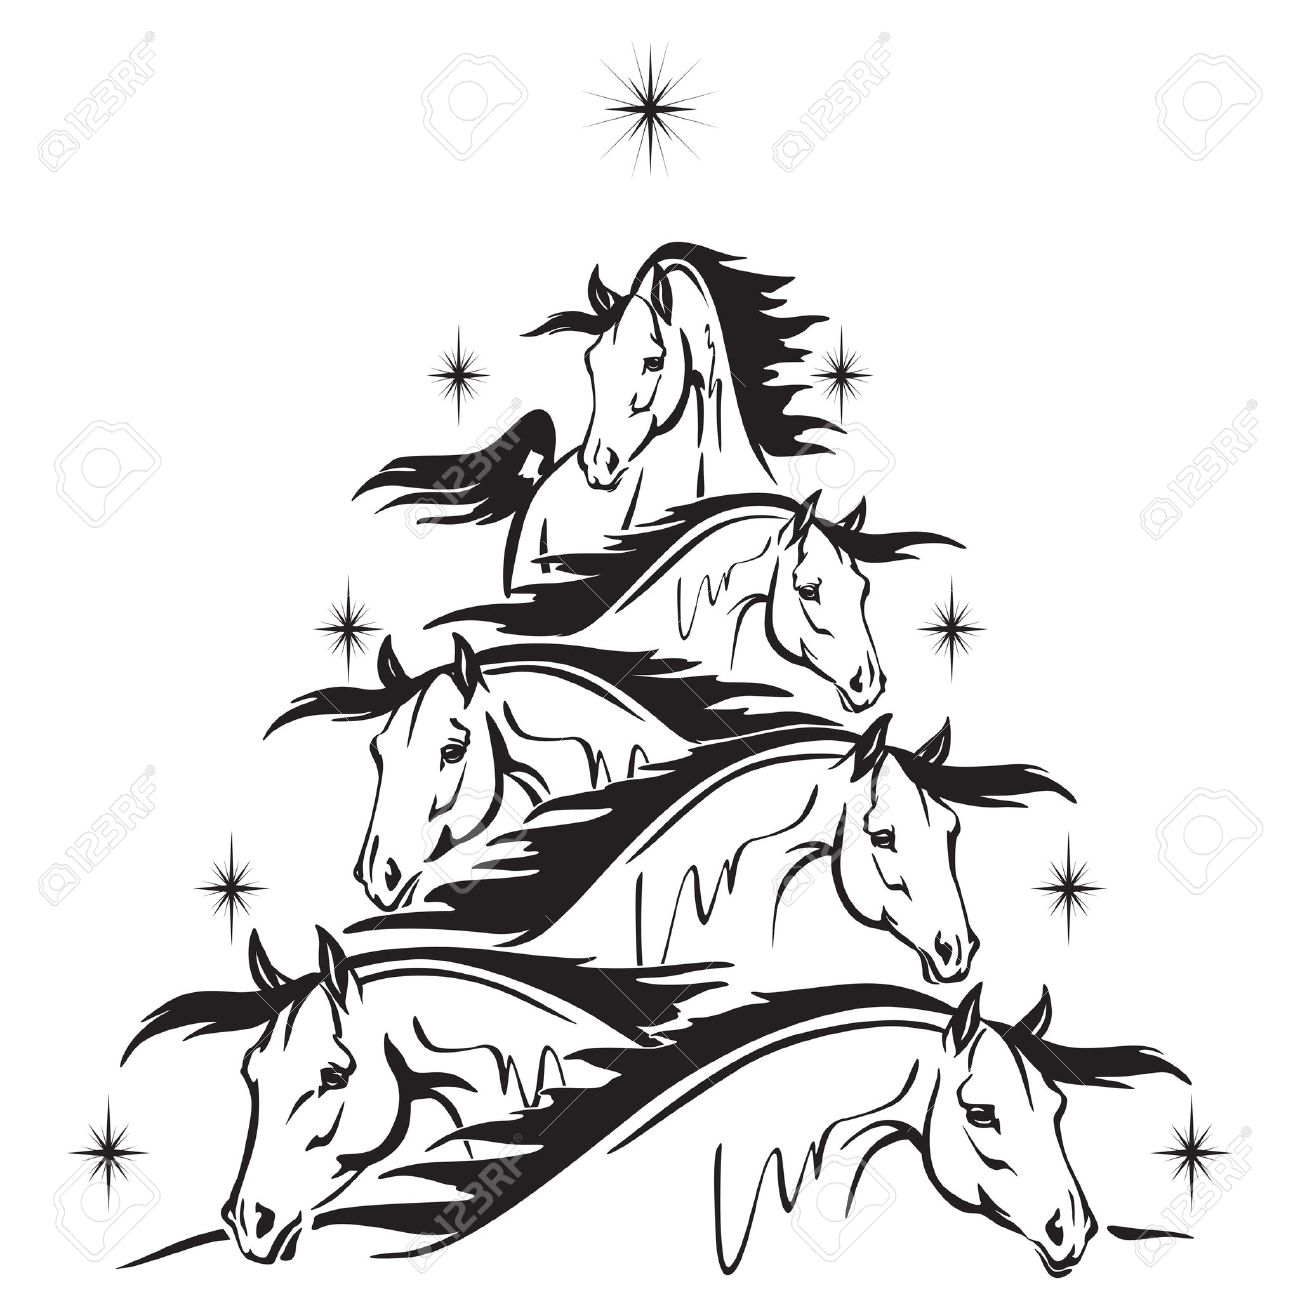 Christmas Horse Drawing.Christmas Tree Of Horses Heads